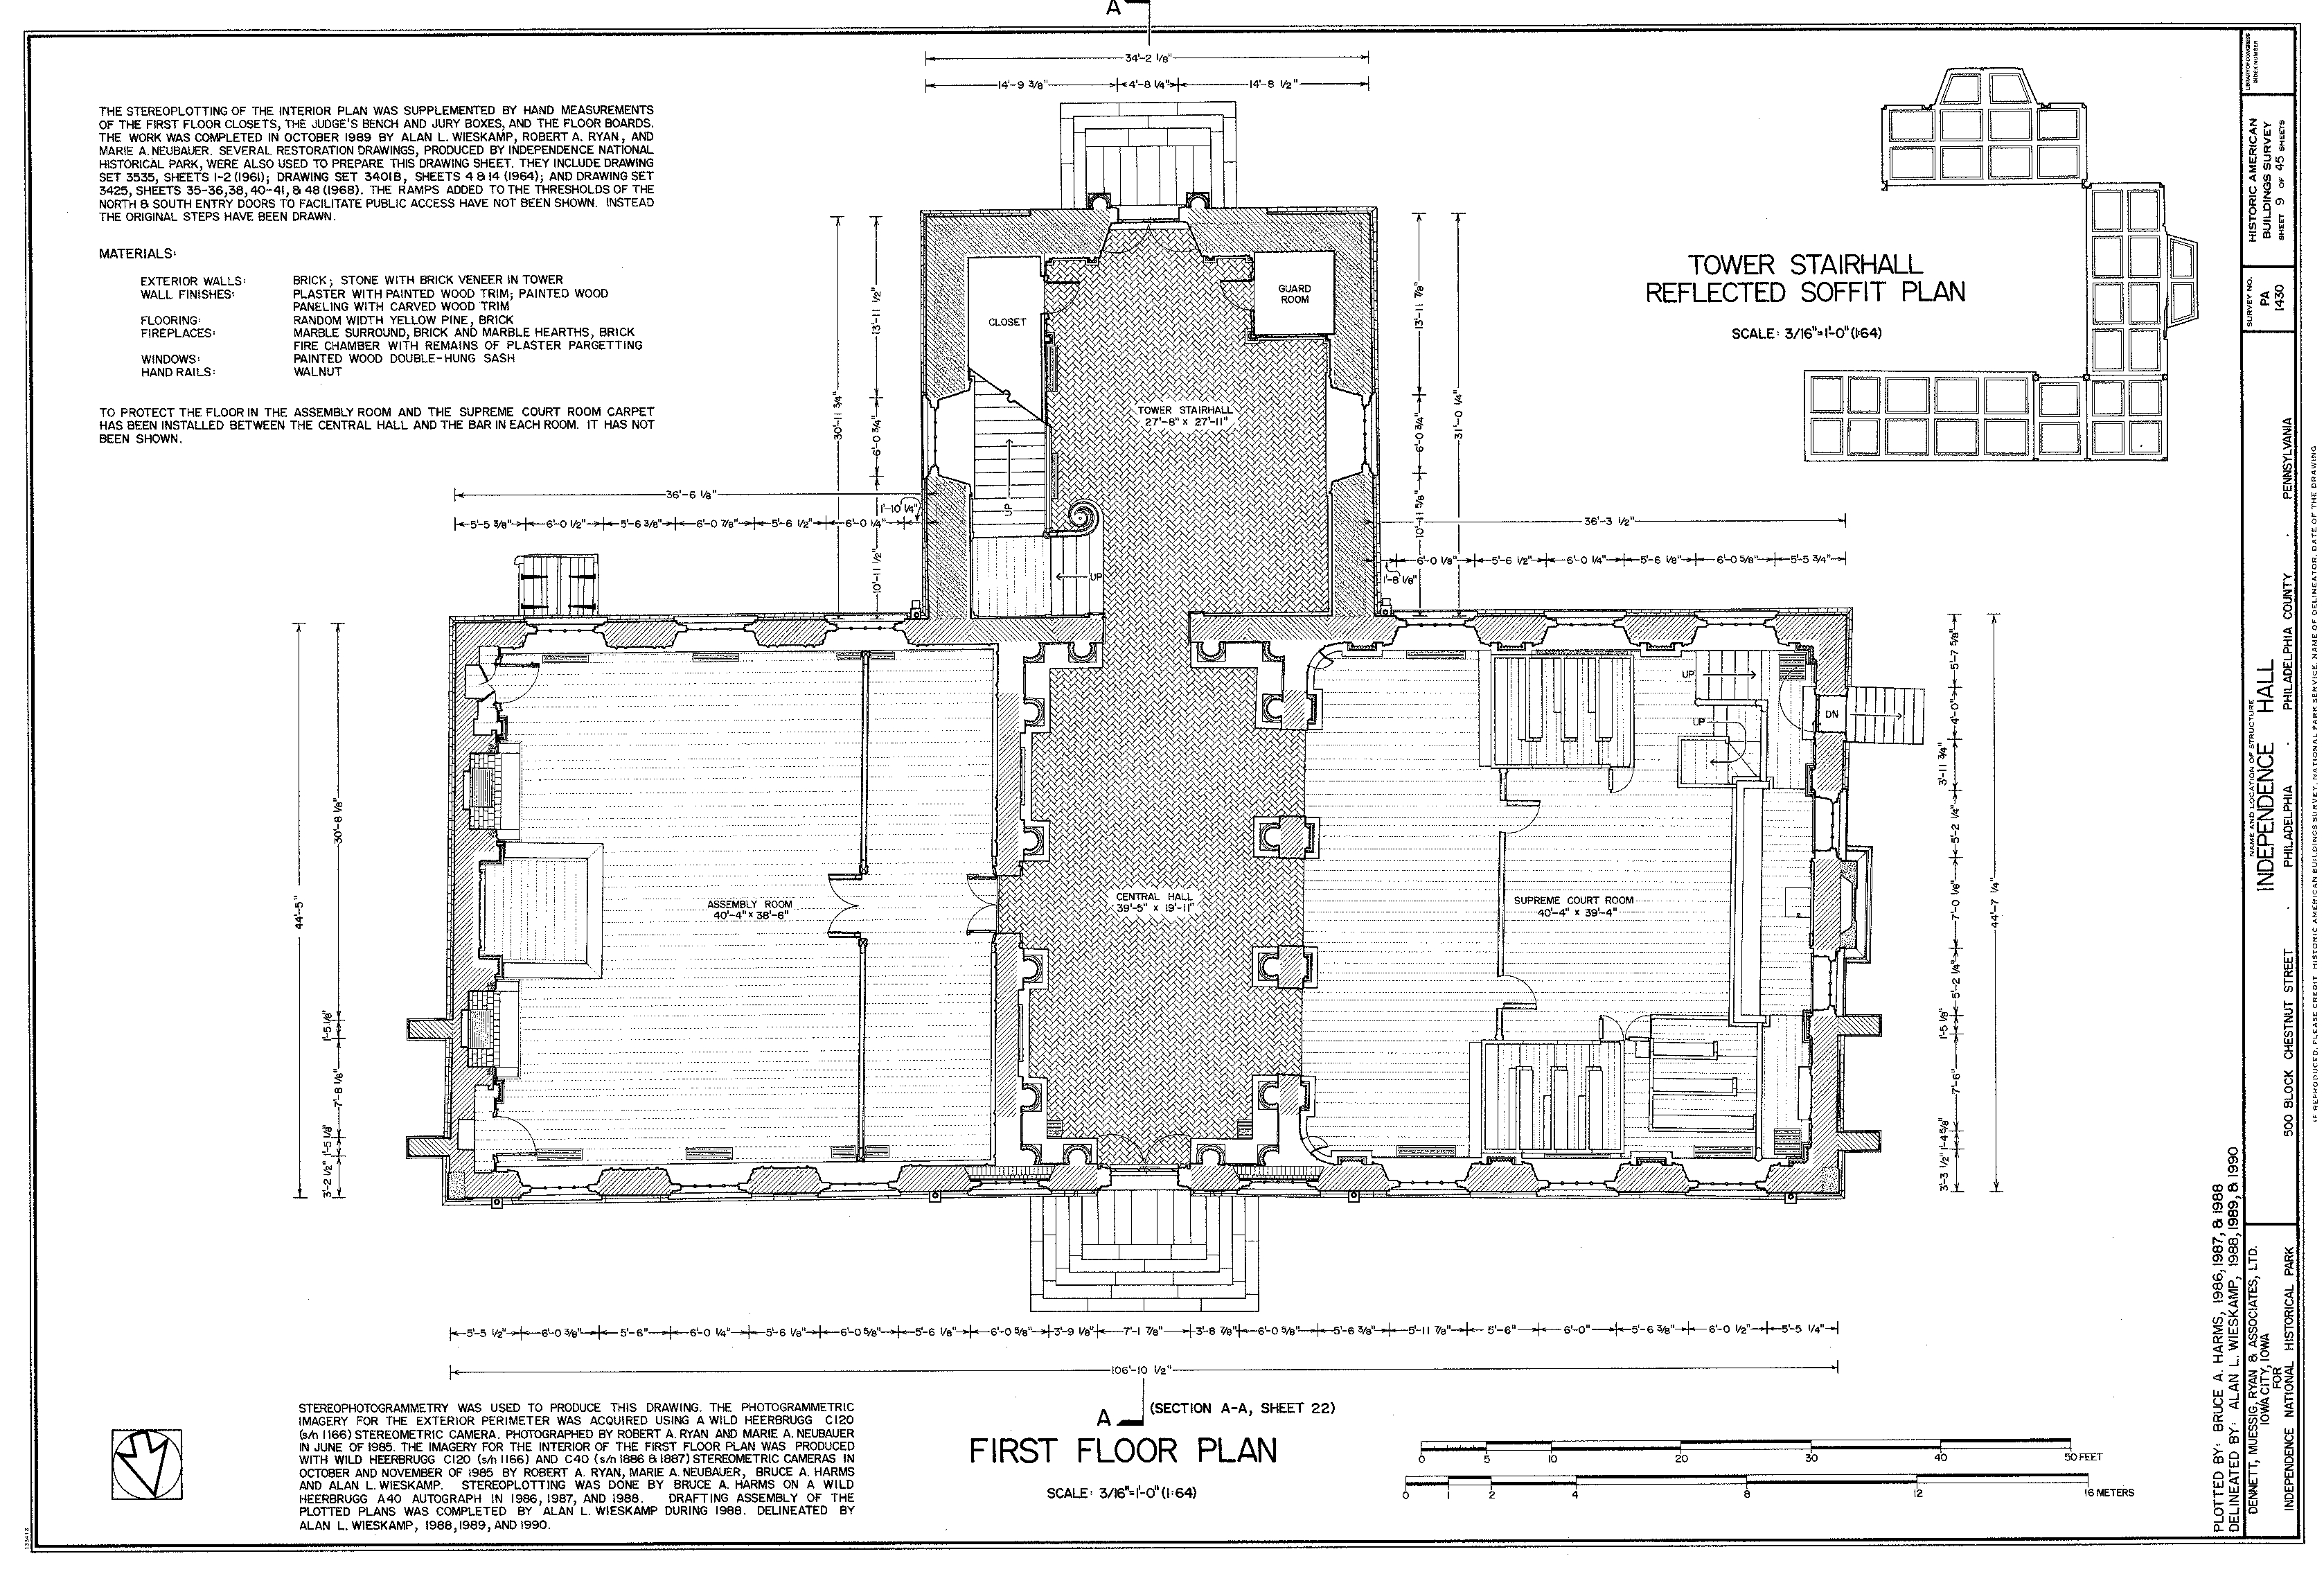 Historic American Buildings Survey (HABS) measured drawing of the first floor of Independence Hall in Philadelphia, 1987-1989.